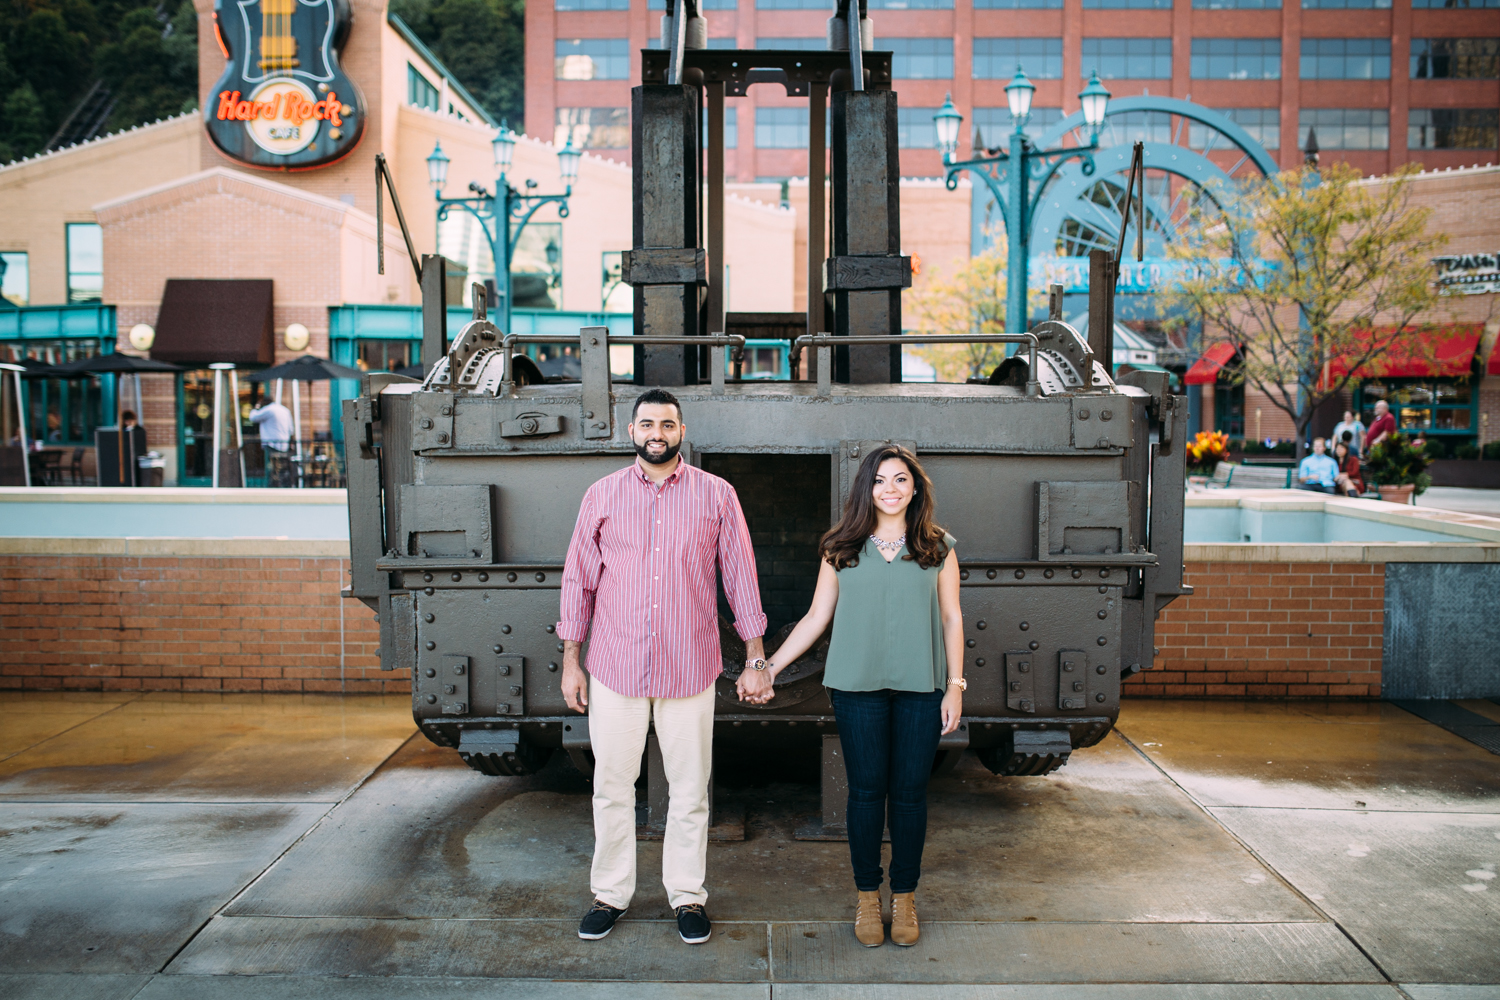 Ashley-reed-photography-pittsburgh-engagement-engagementphotography-engagementphotographer-stationsquare-statio-square-pittsburghengagementphotography-8.jpg